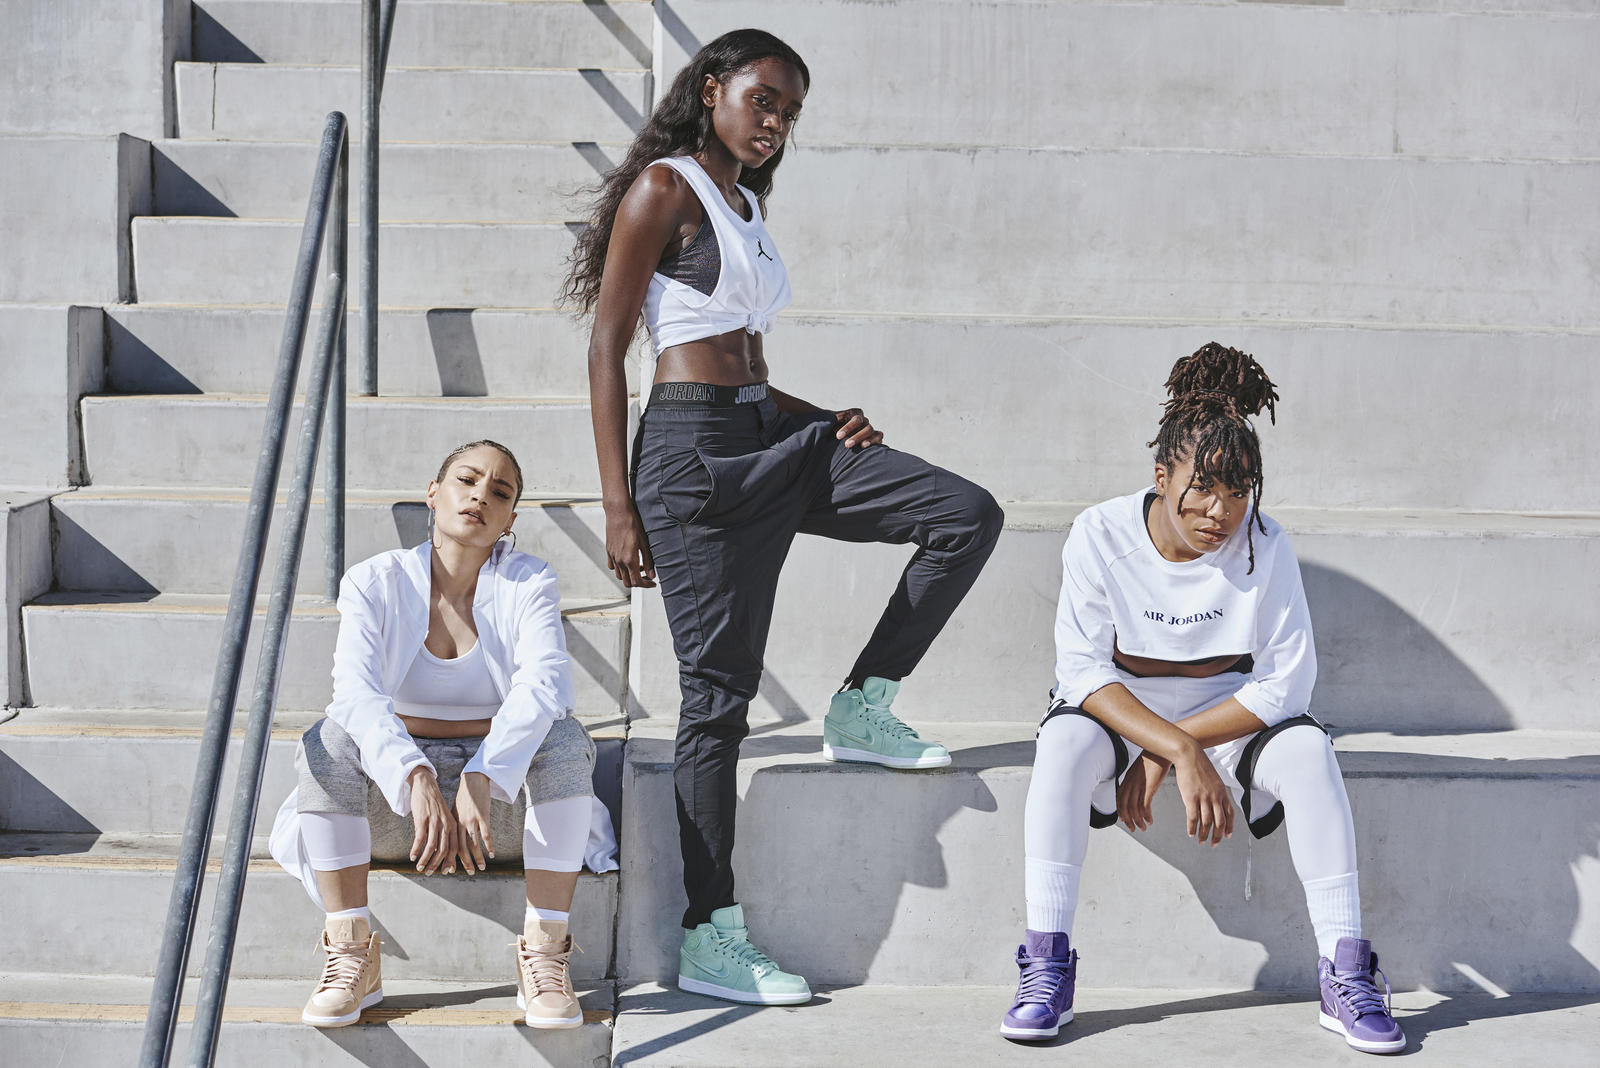 Jordan Brand Reveals Spring 2018 Women's Collection. Share Image. Jordan  Brand's Spring 2018 ...